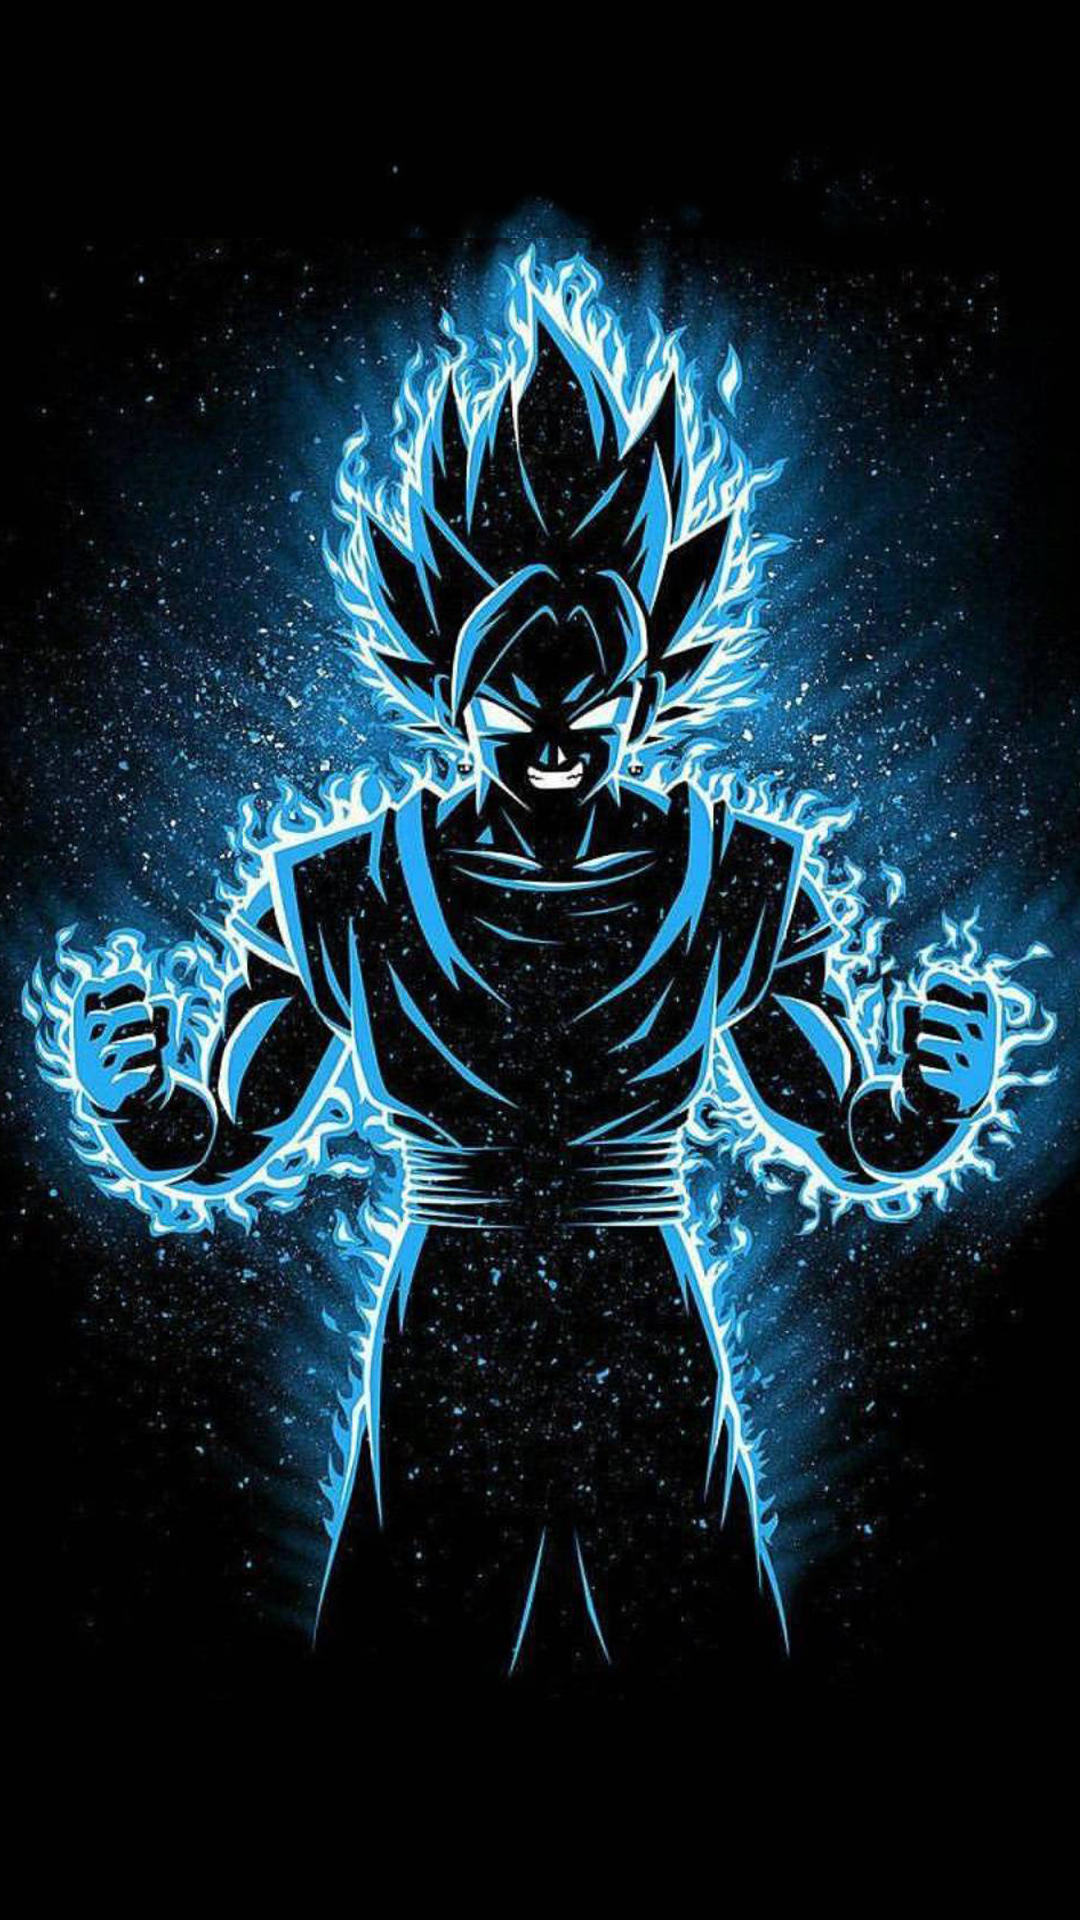 Simple Wallpaper Dragon Ball Z Silhouette - Best-20-Pictures-of-Dragon-Ball-Z-%E2%80%93-06-%E2%80%93-Goku-and-Vegeta-Super-Saiyan-Blue-Fusion-Picture-for-Mobile-Phone  Collection_202955 .jpg